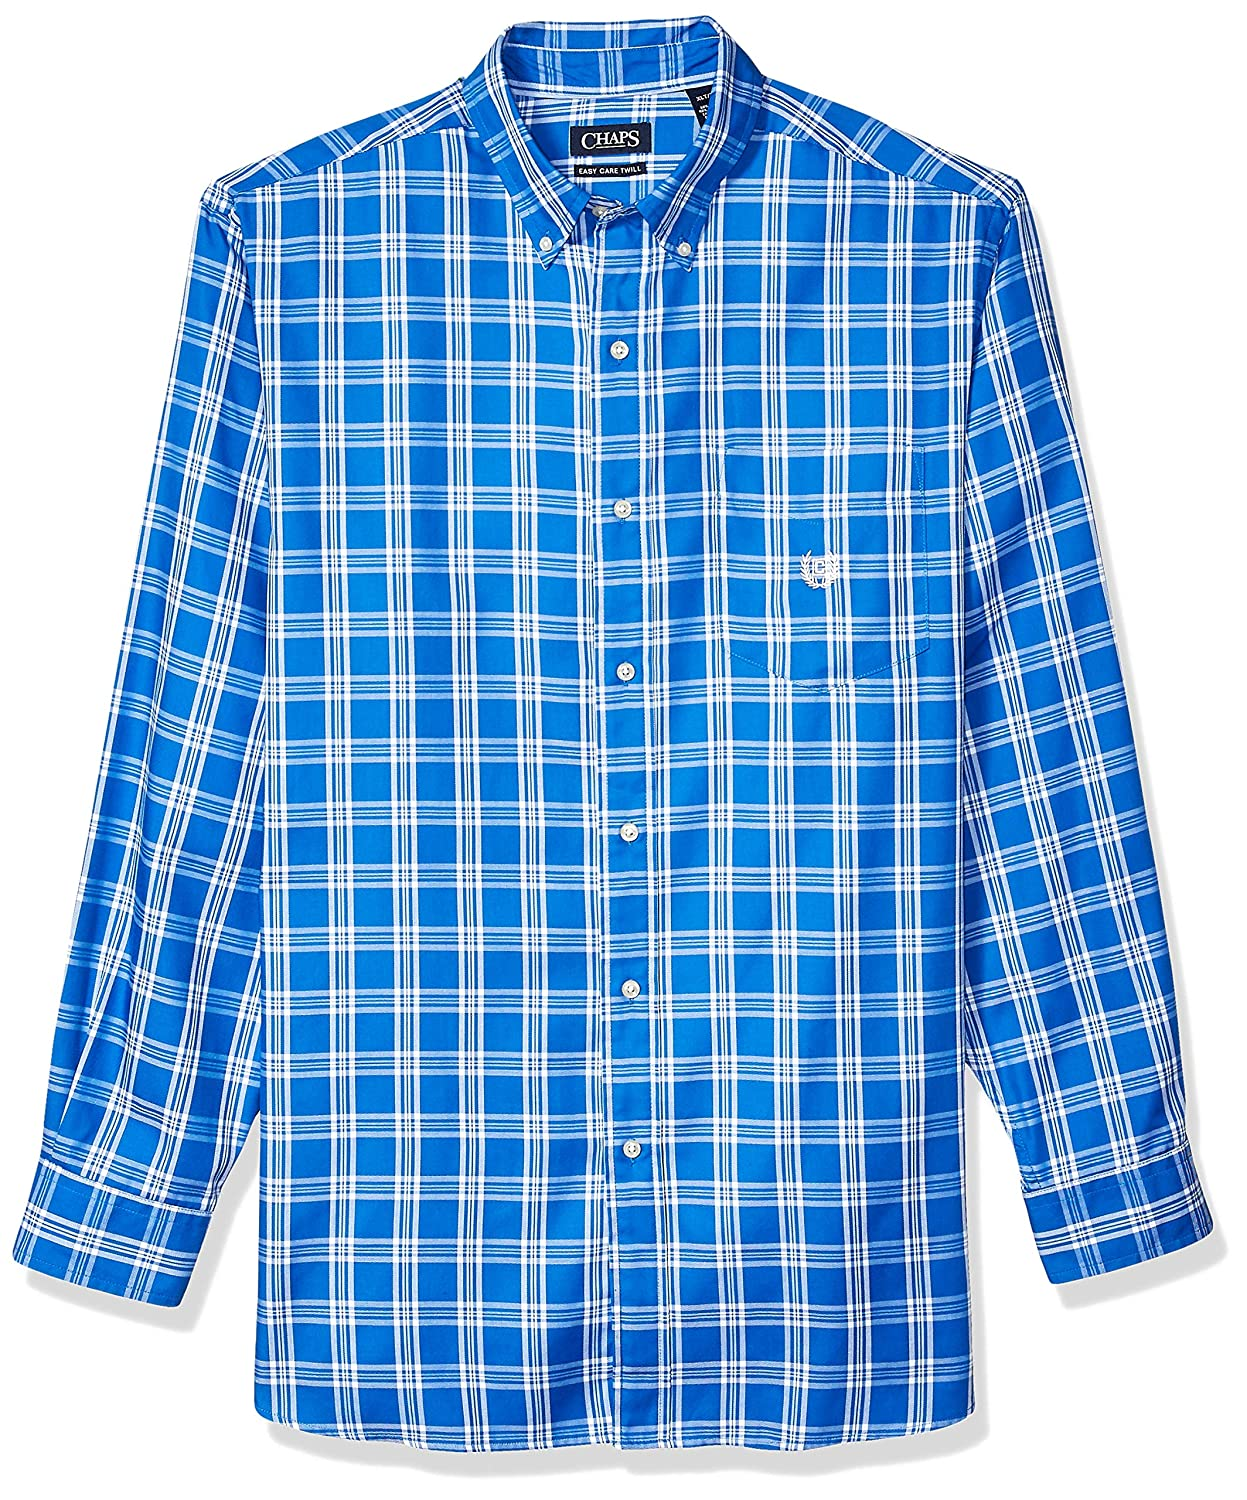 Chaps Men's Big and Tall Long Sleeve Easy Care Button Down Shirt